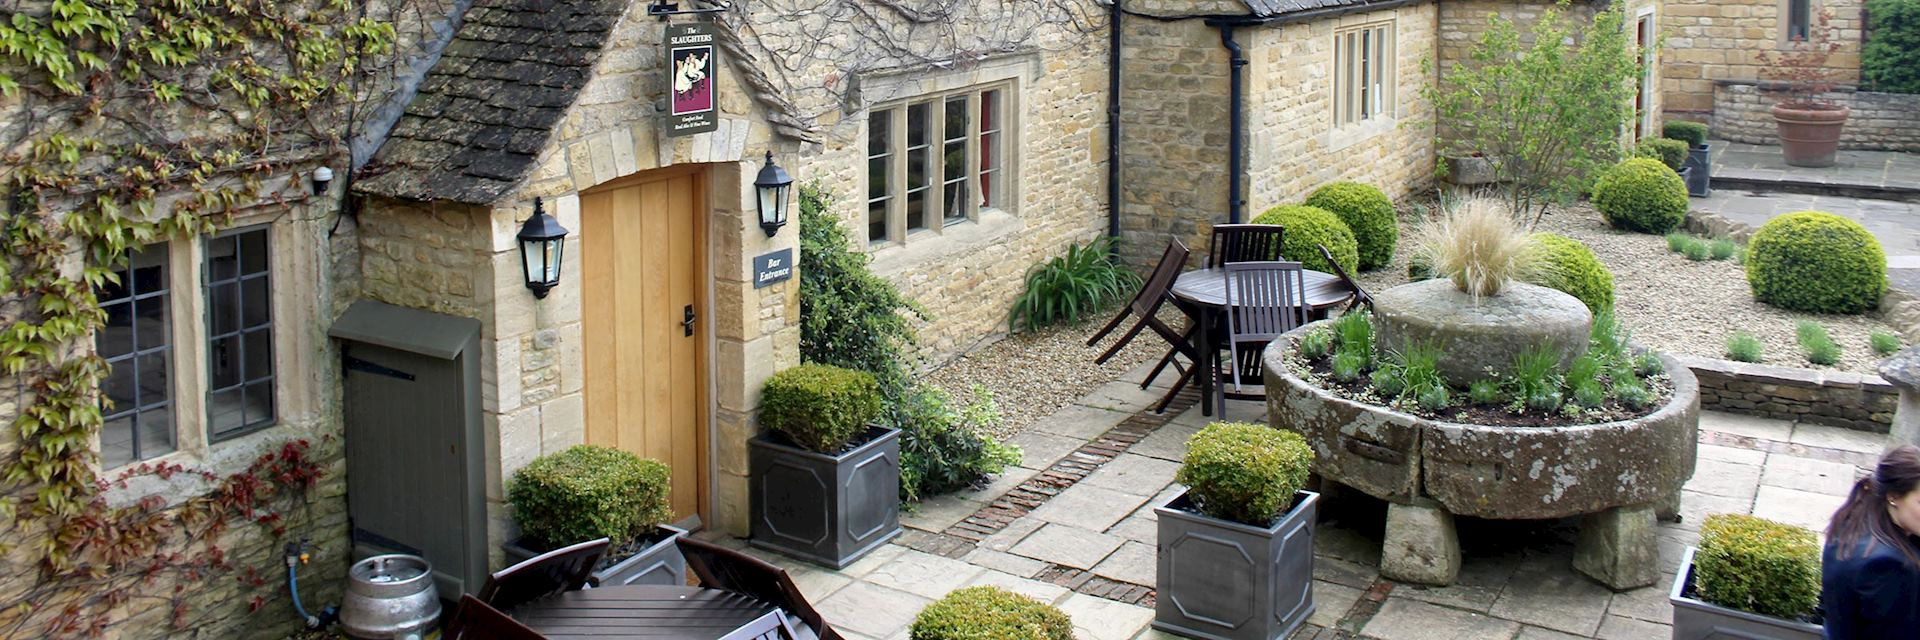 The Slaughters Country Inn, the Cotswolds